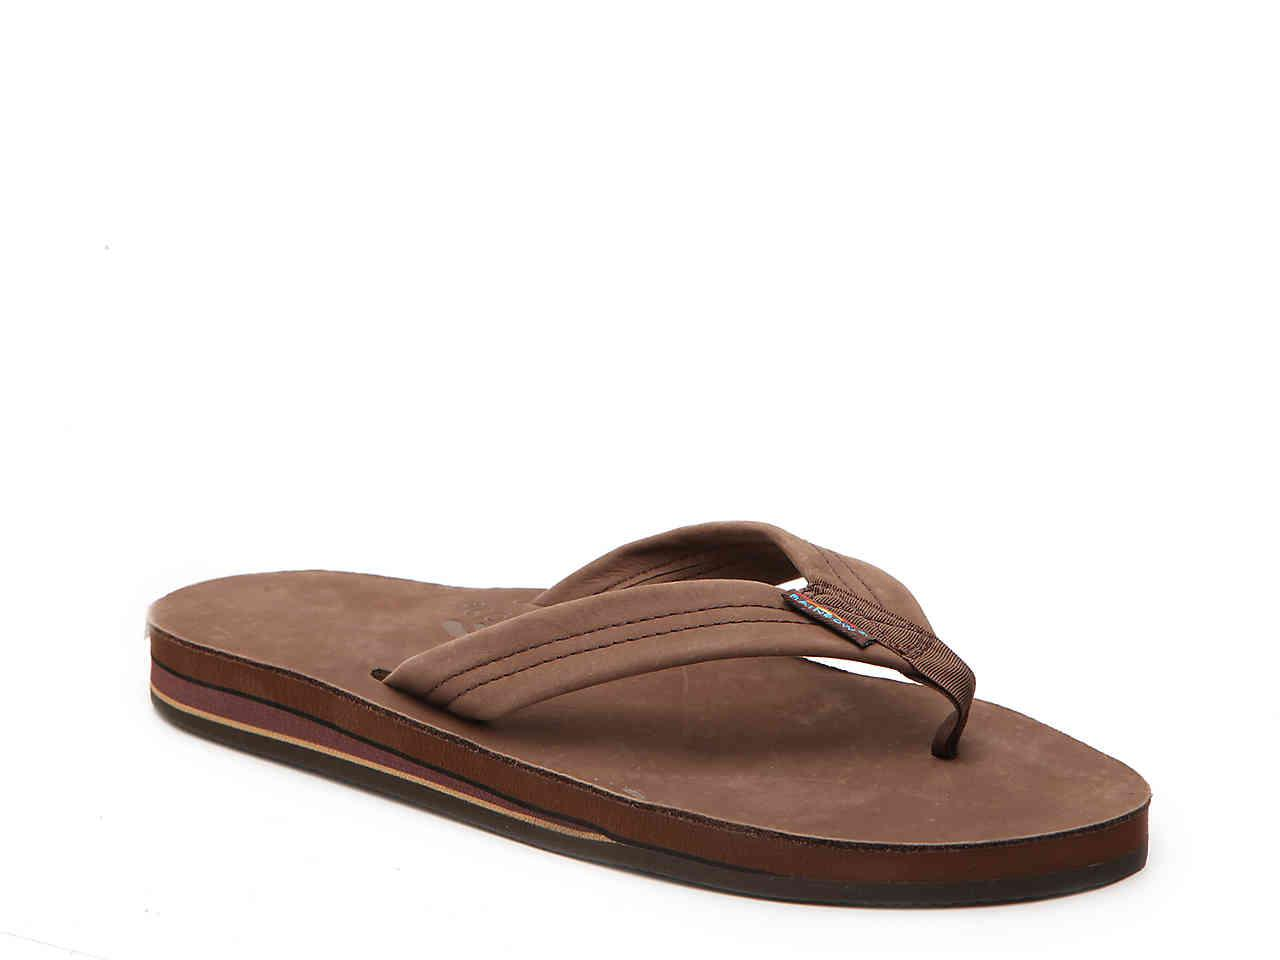 92c5733989c6 Lyst - Rainbow Sandals Premier Leather Sandal in Brown for Men